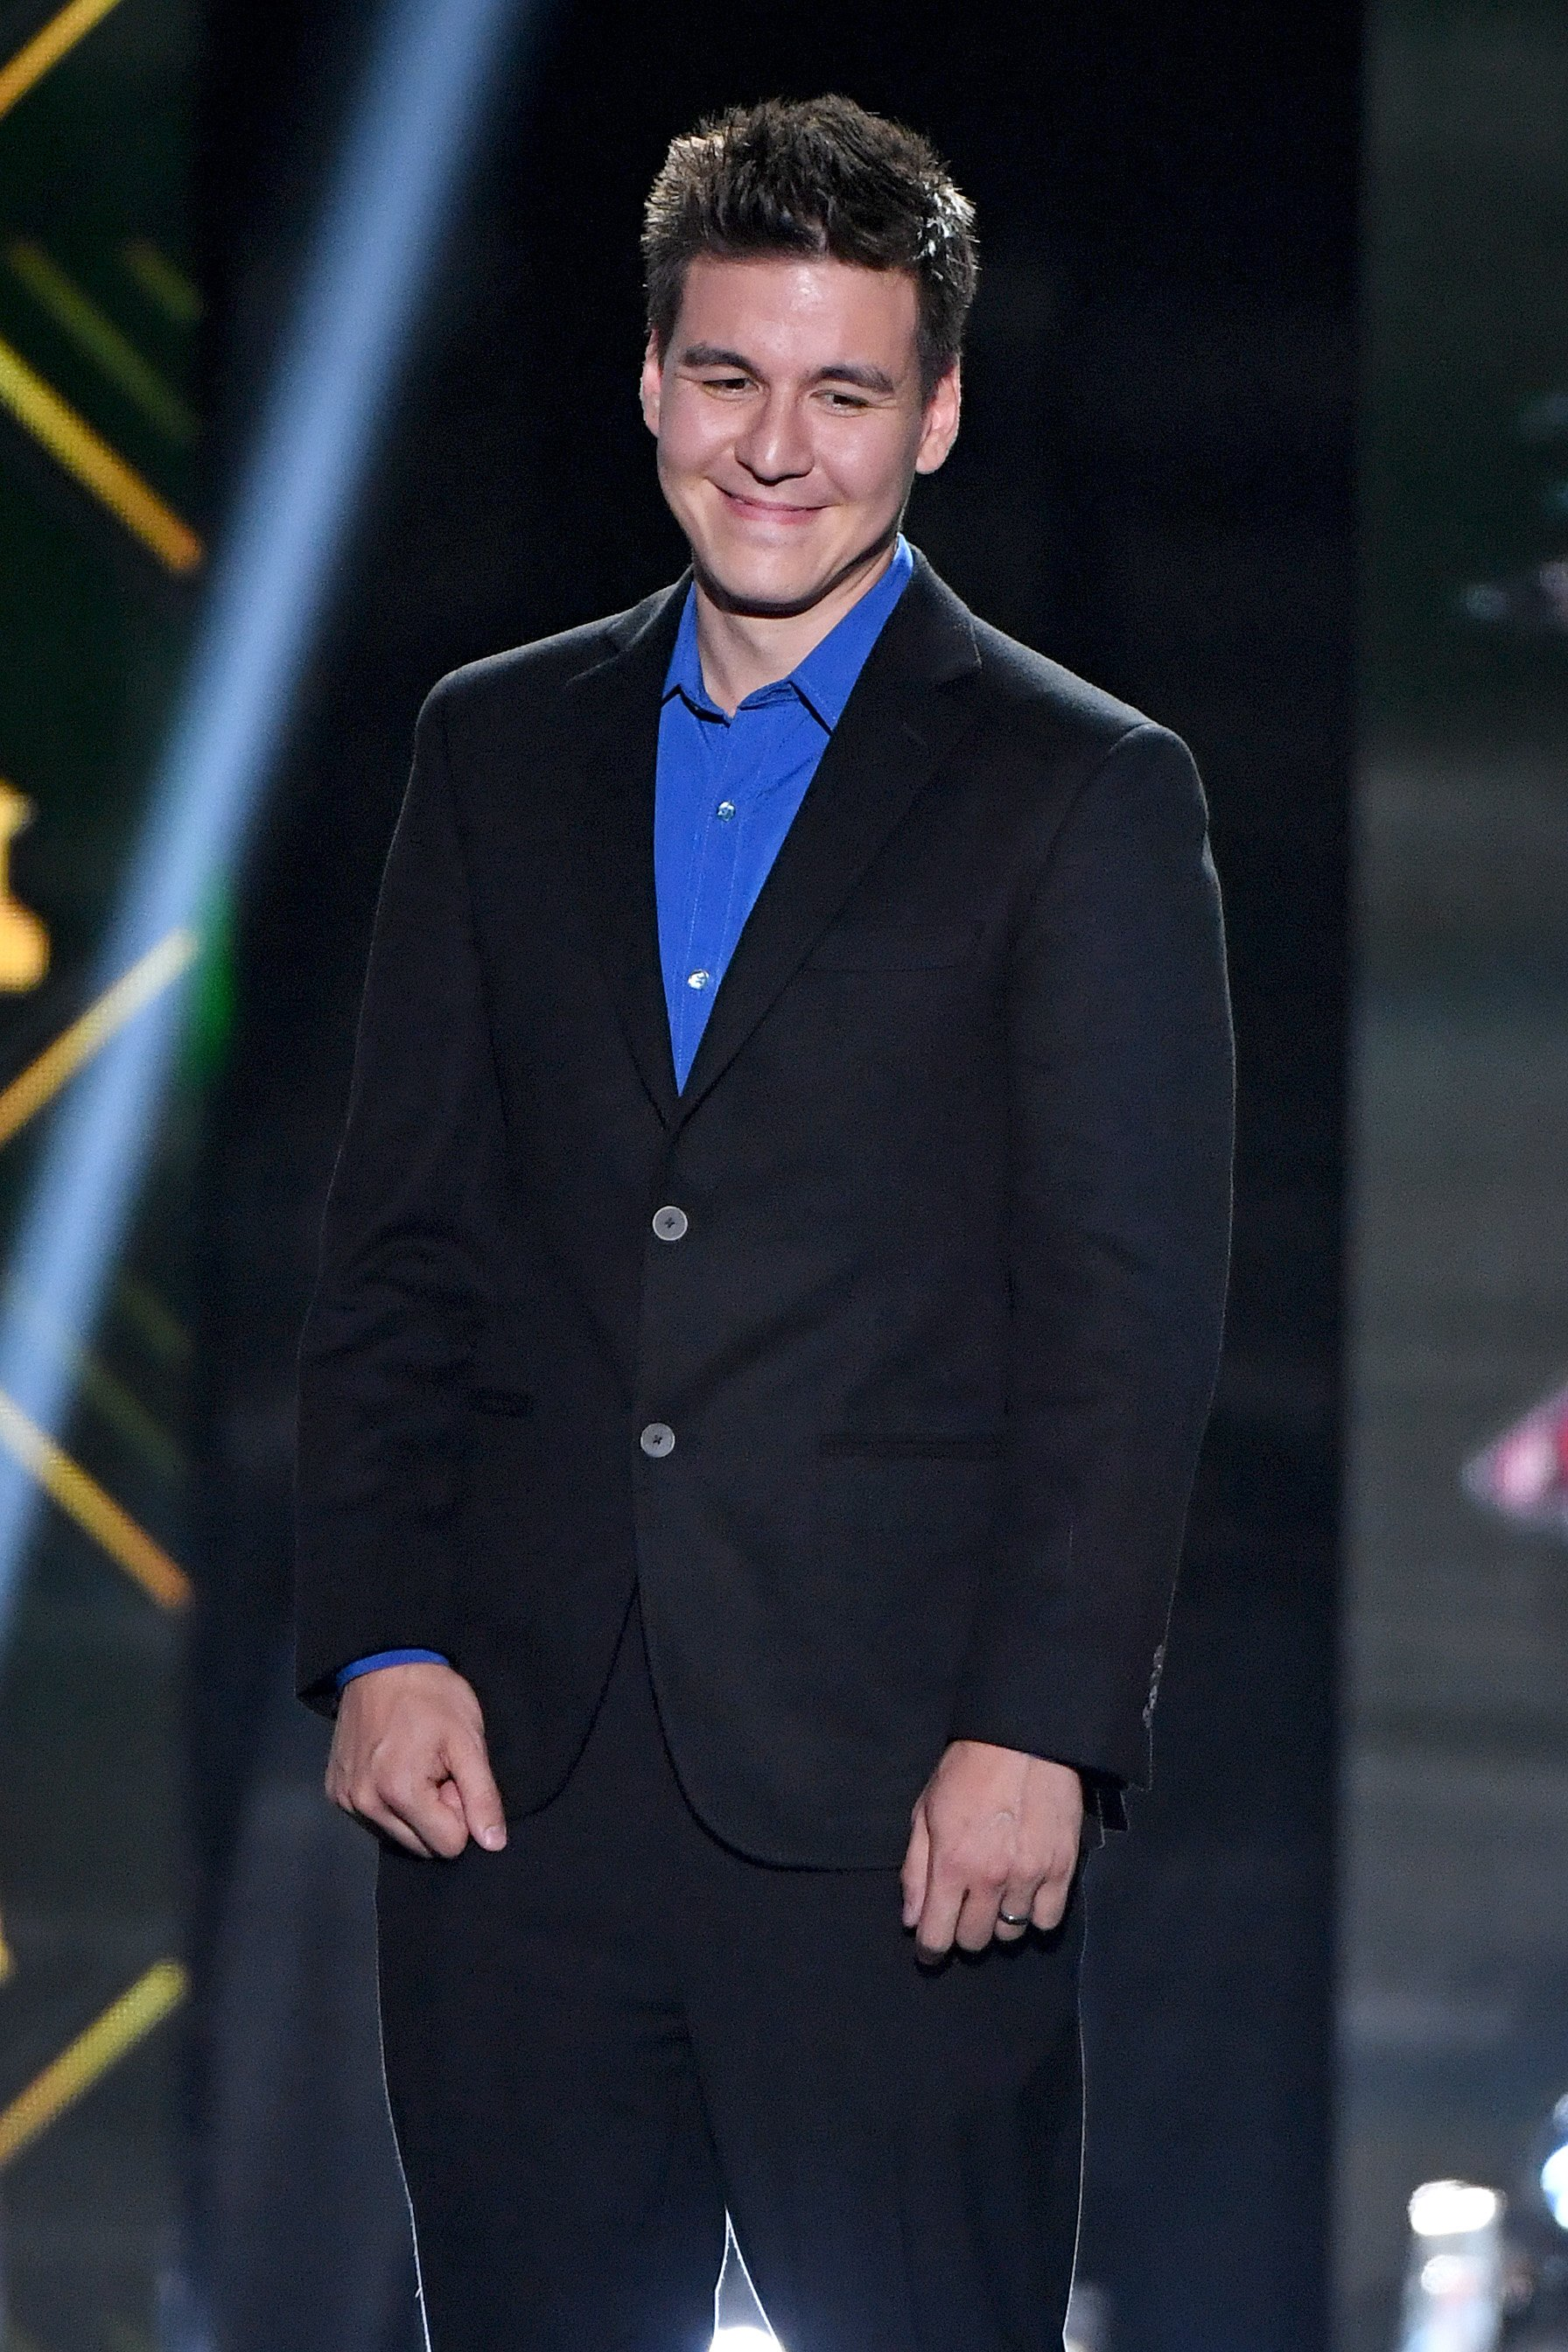 """""""Jeopardy!"""" champion James Holzhauer presents the Frank J. Selke Trophy during the 2019 NHL Awards at the Mandalay Bay Events Center on June 19, 2019 in Las Vegas, Nevada 